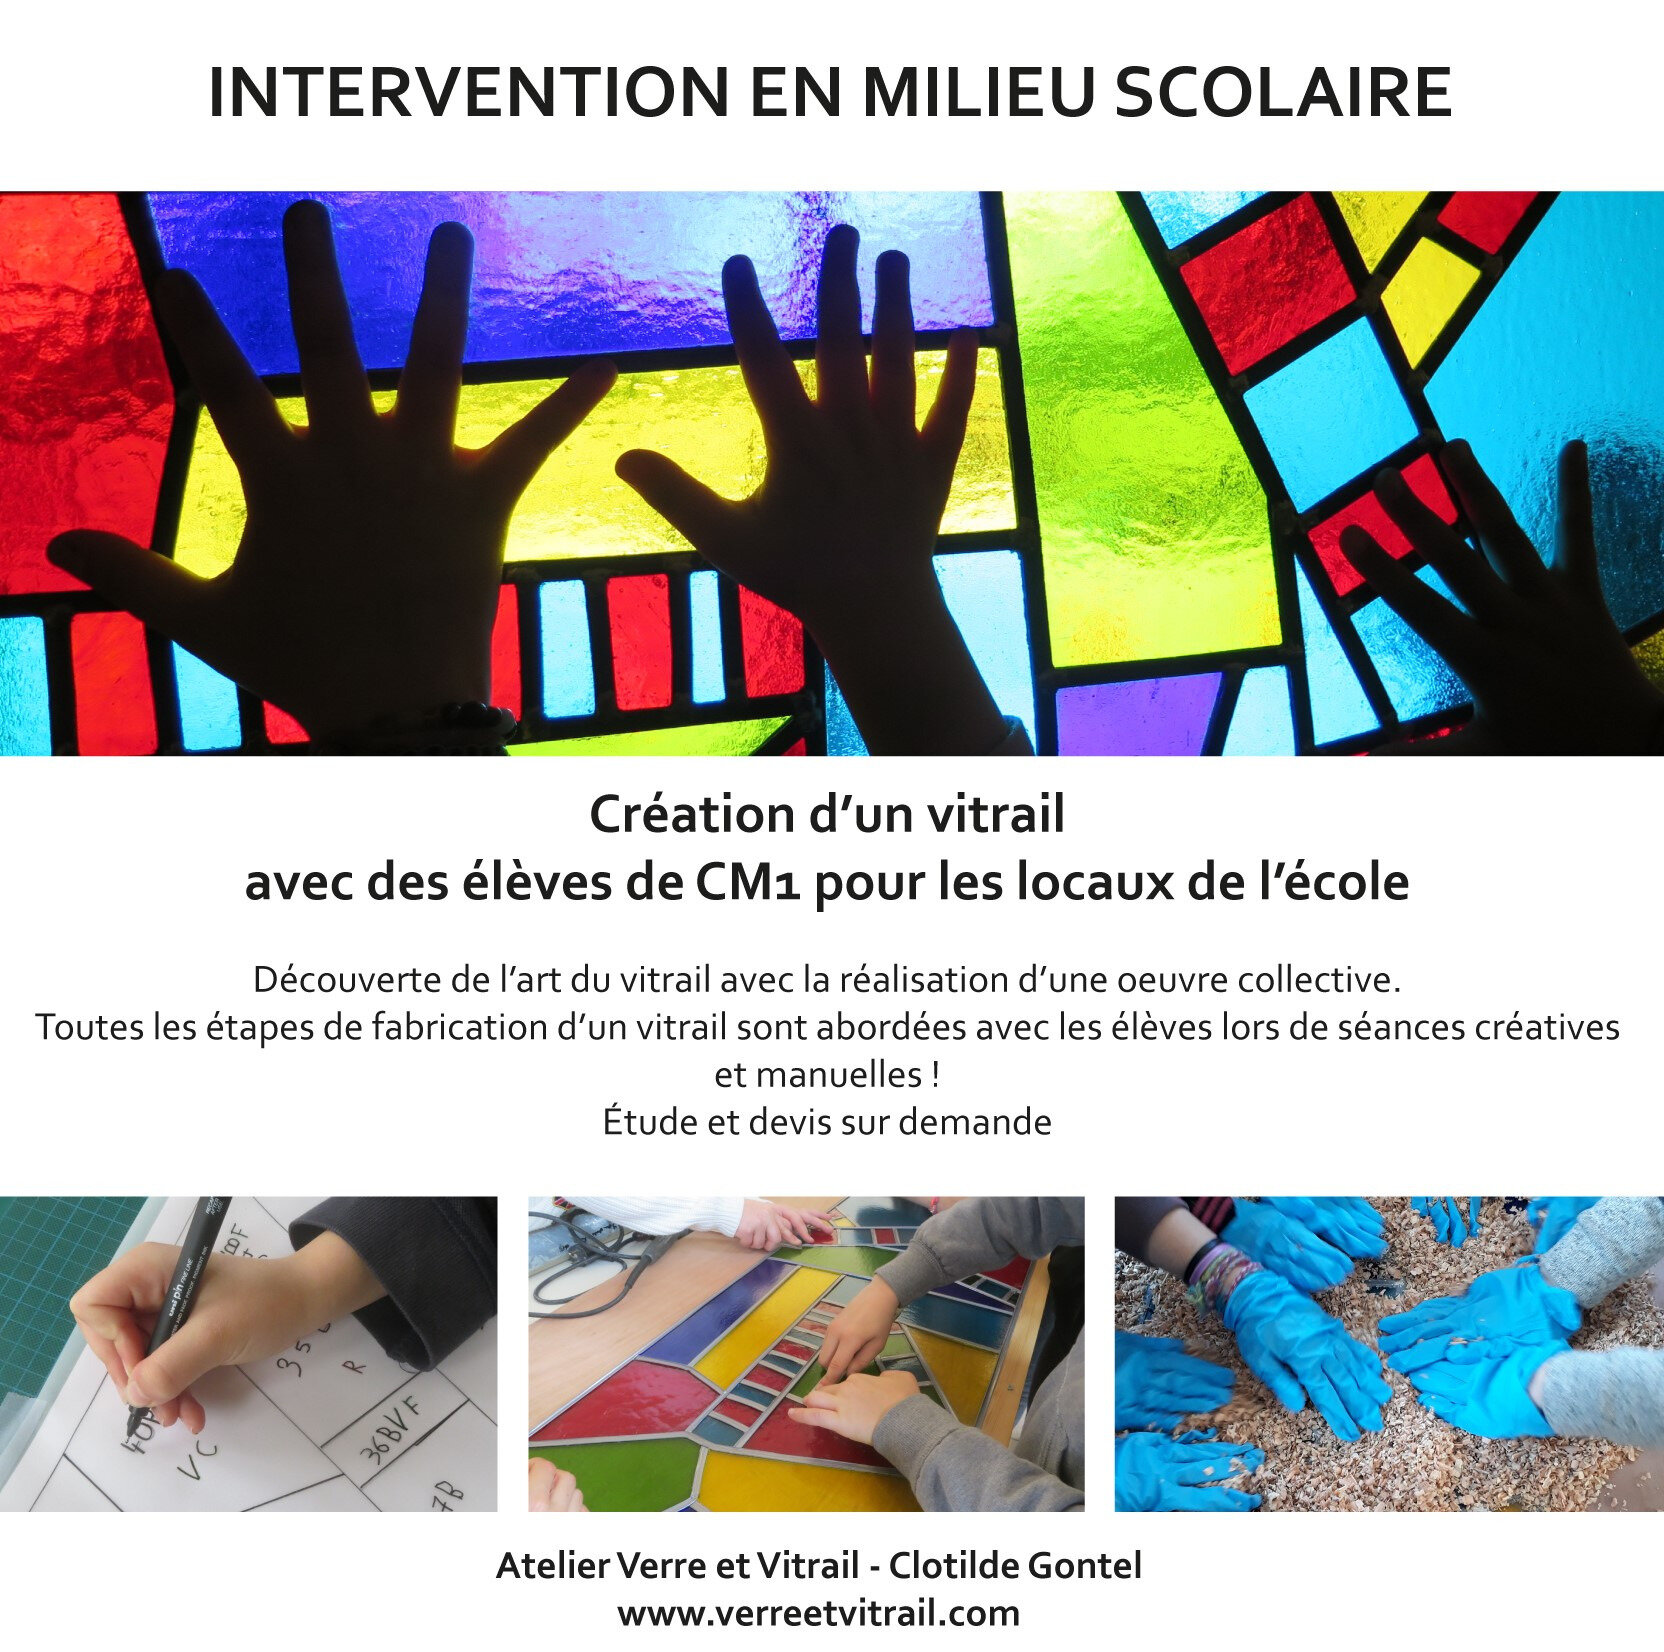 Intervention milieu scolaire